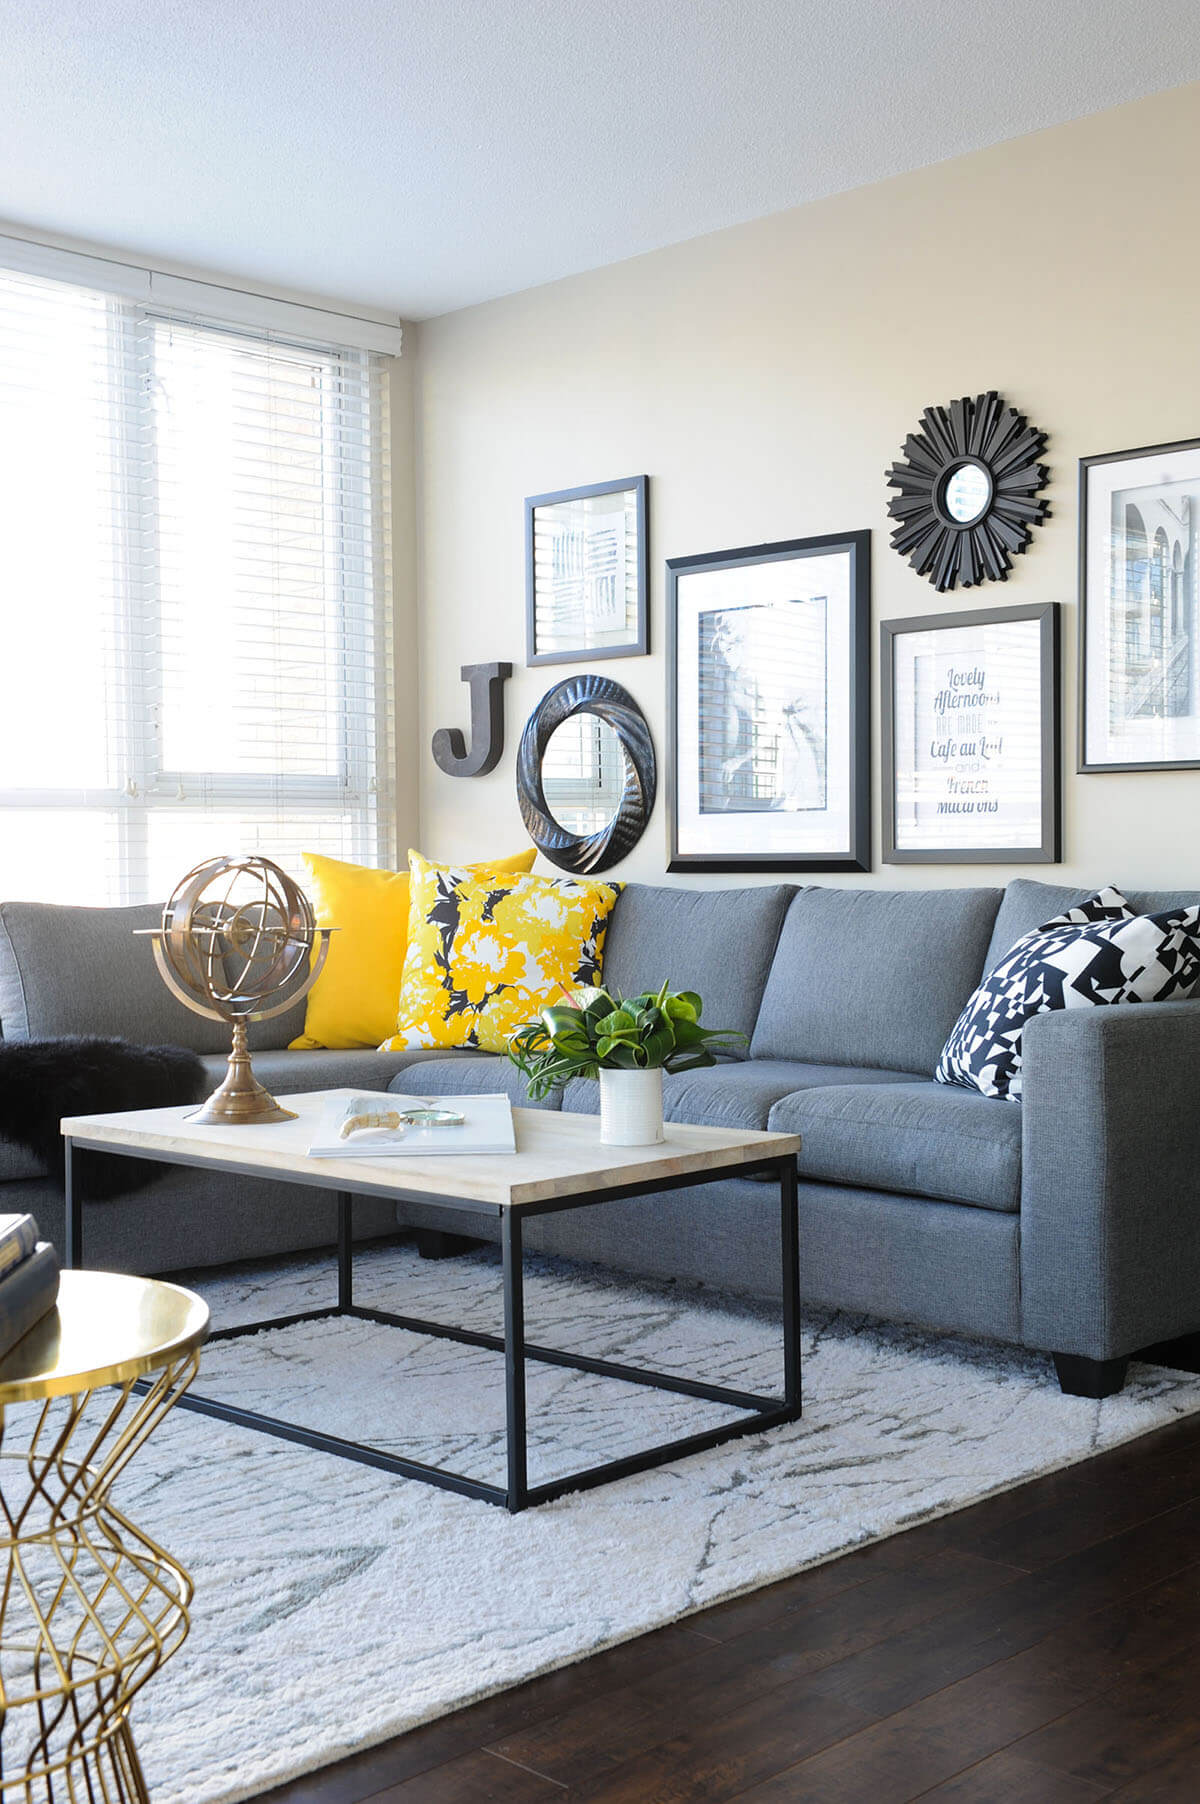 25 best small living room decor and design ideas for 2019 - Living room decor for small spaces ...